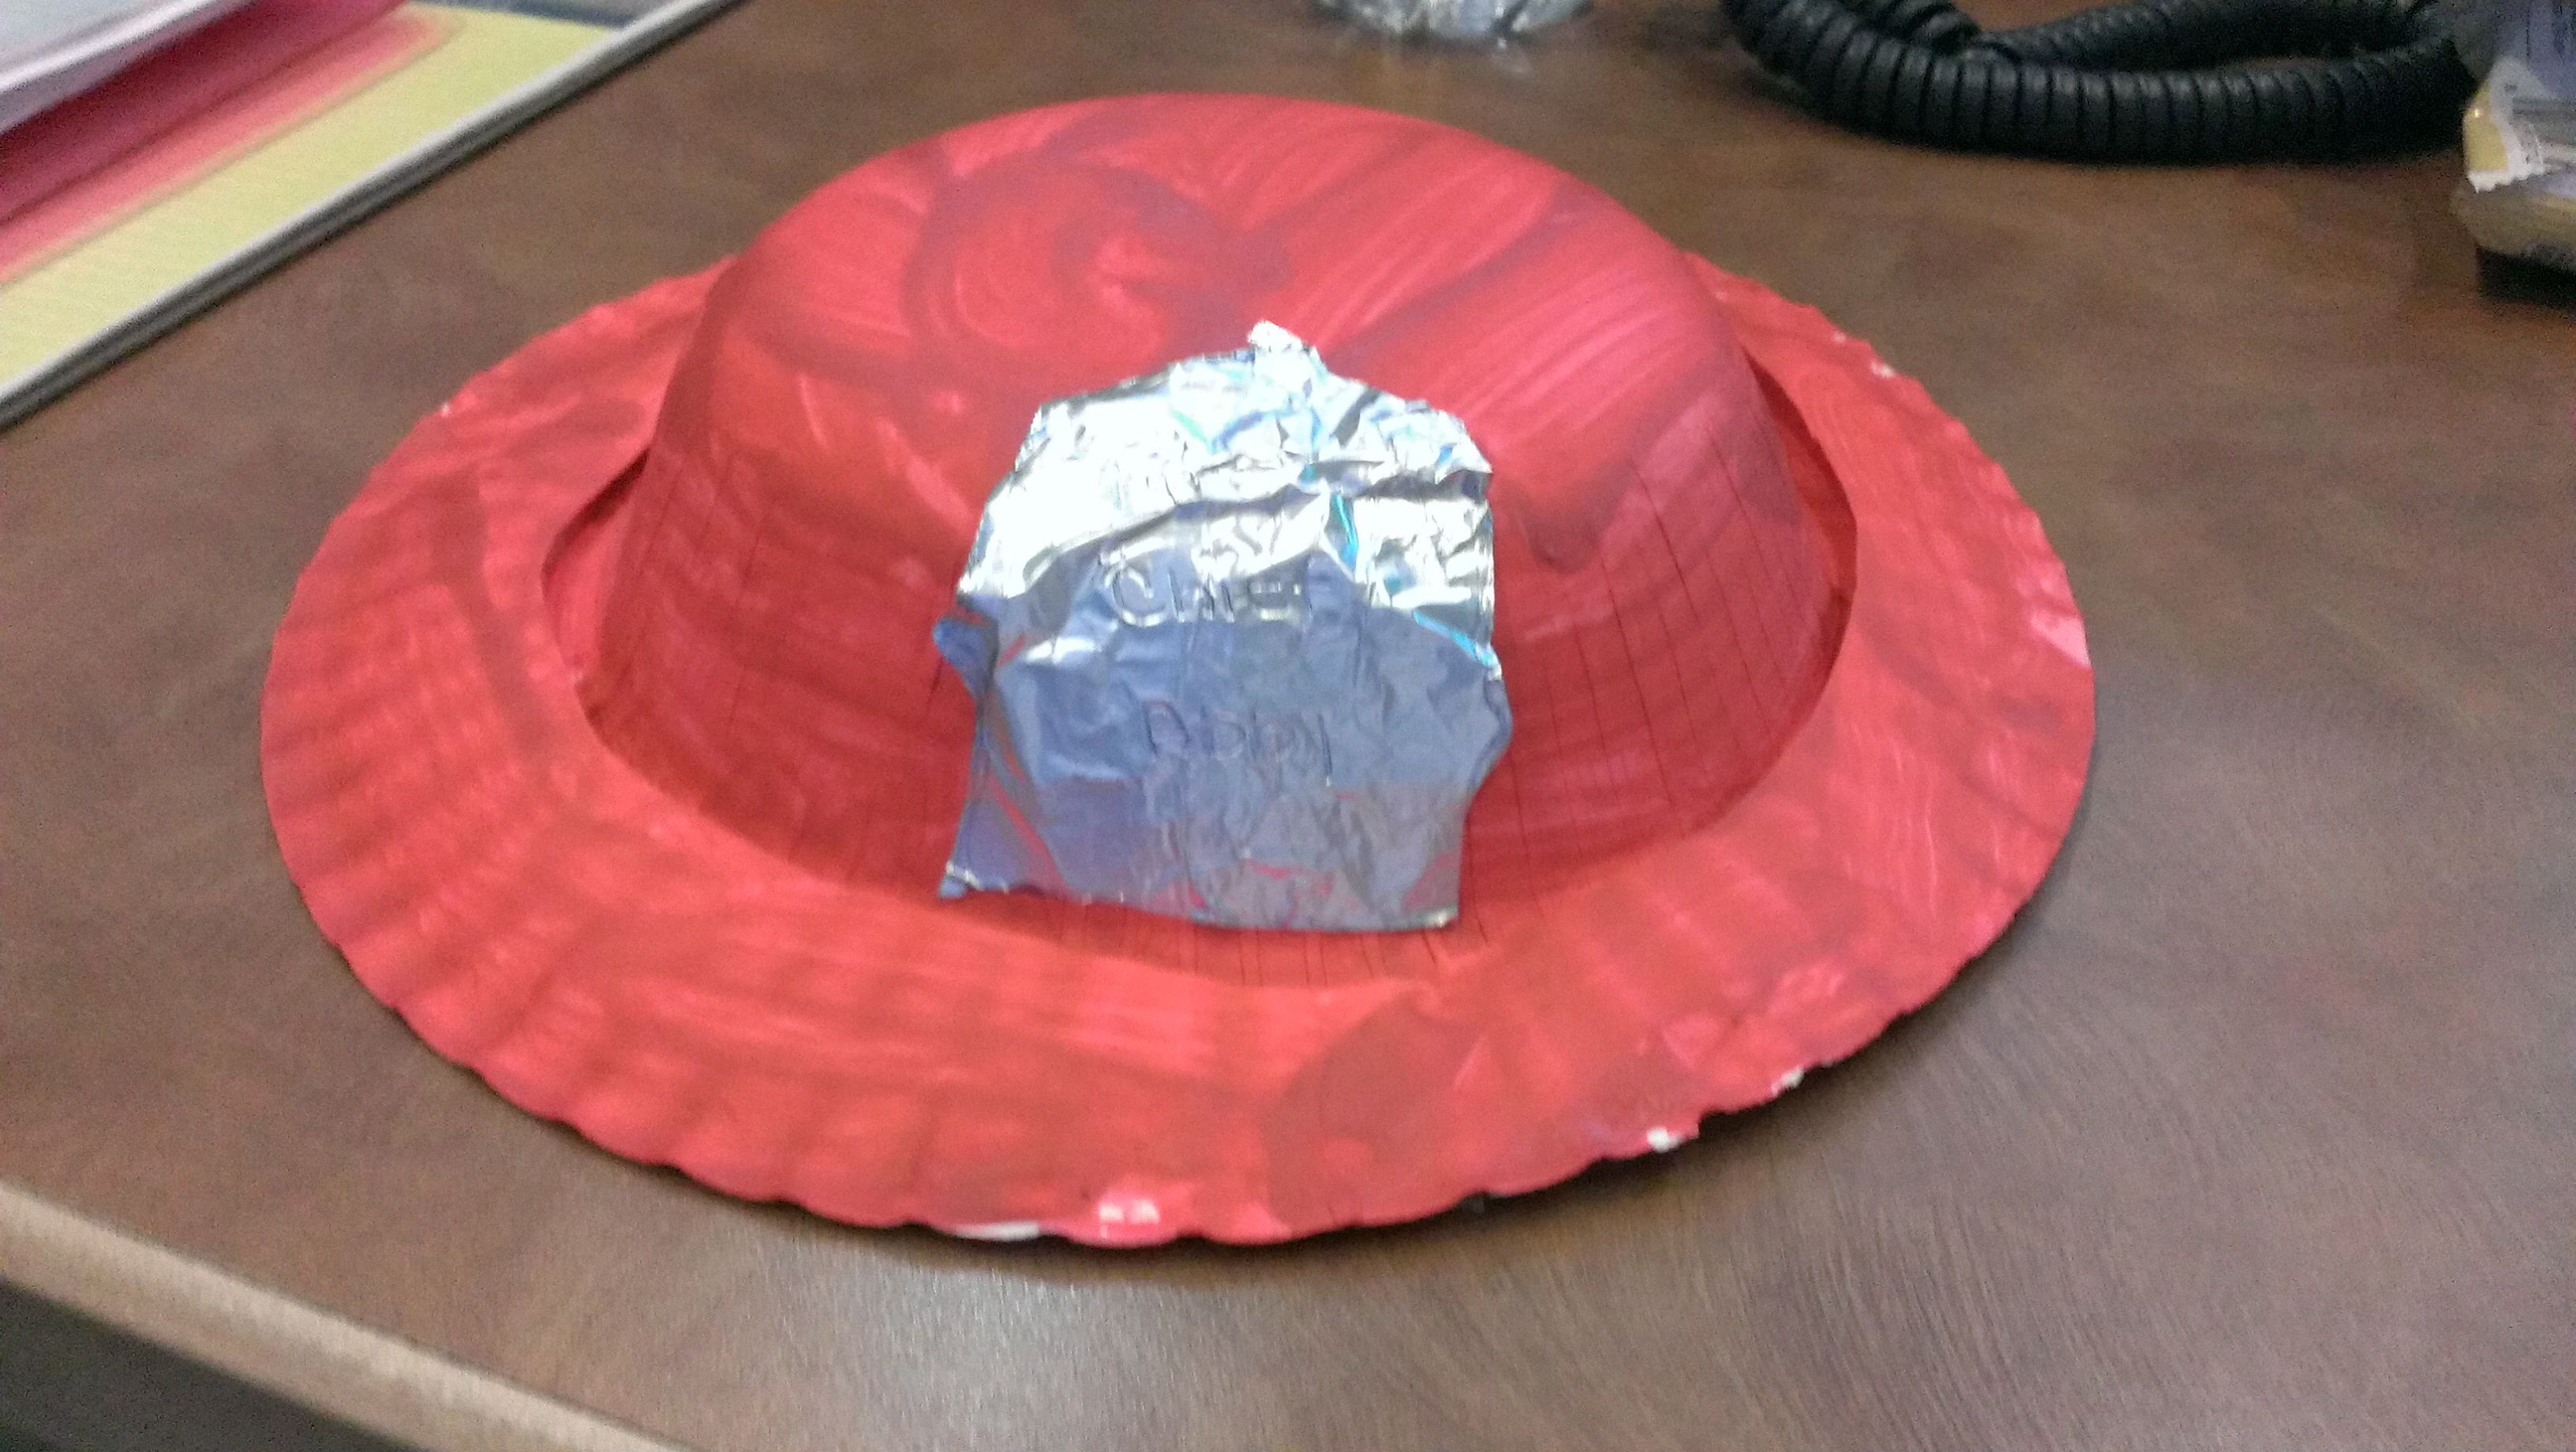 Community Helpers Craft Paper Bowl And Plate Firefighter